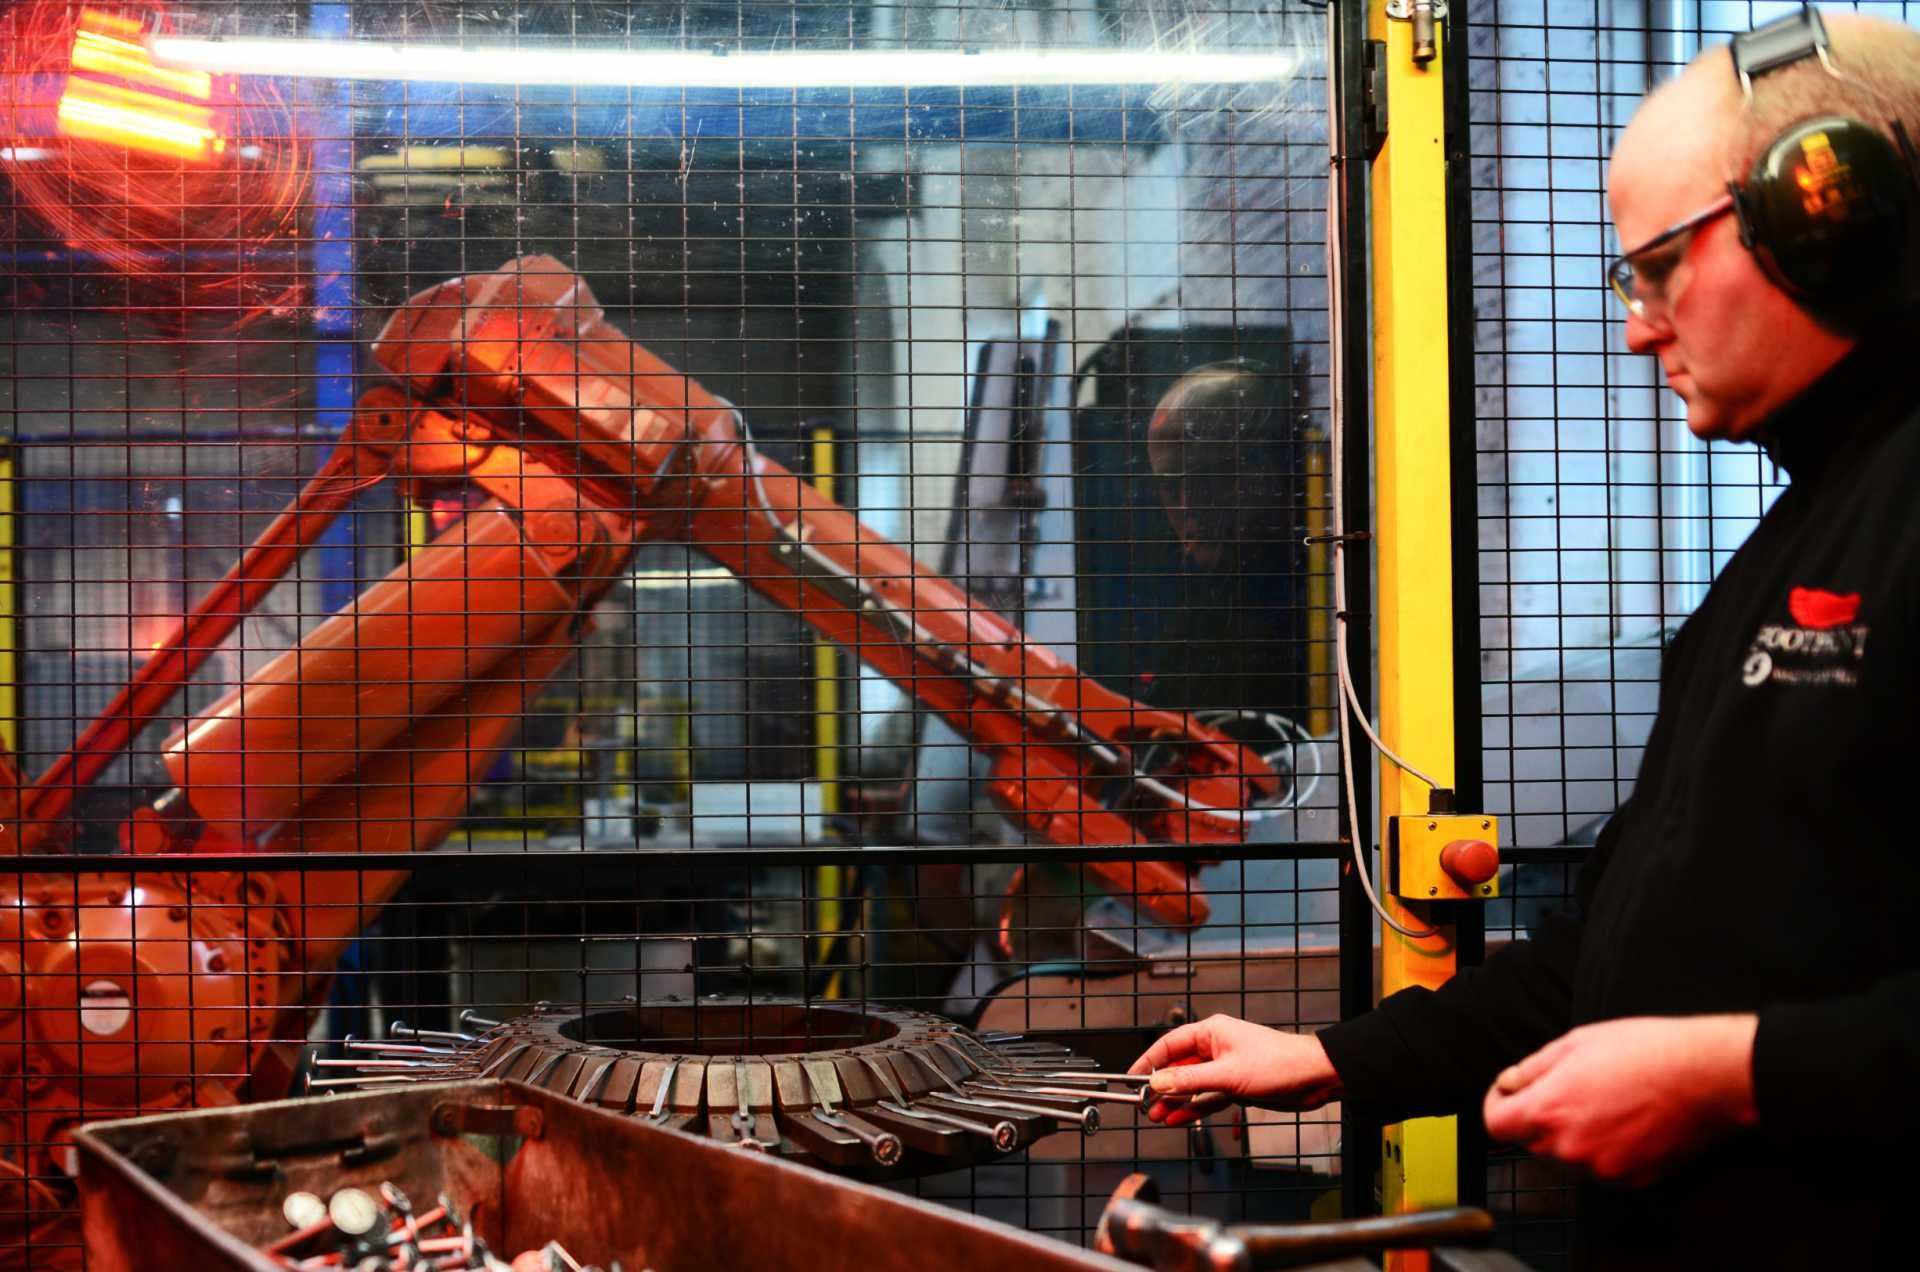 Automation offers huge opportunities for firms to improve productivity levels.